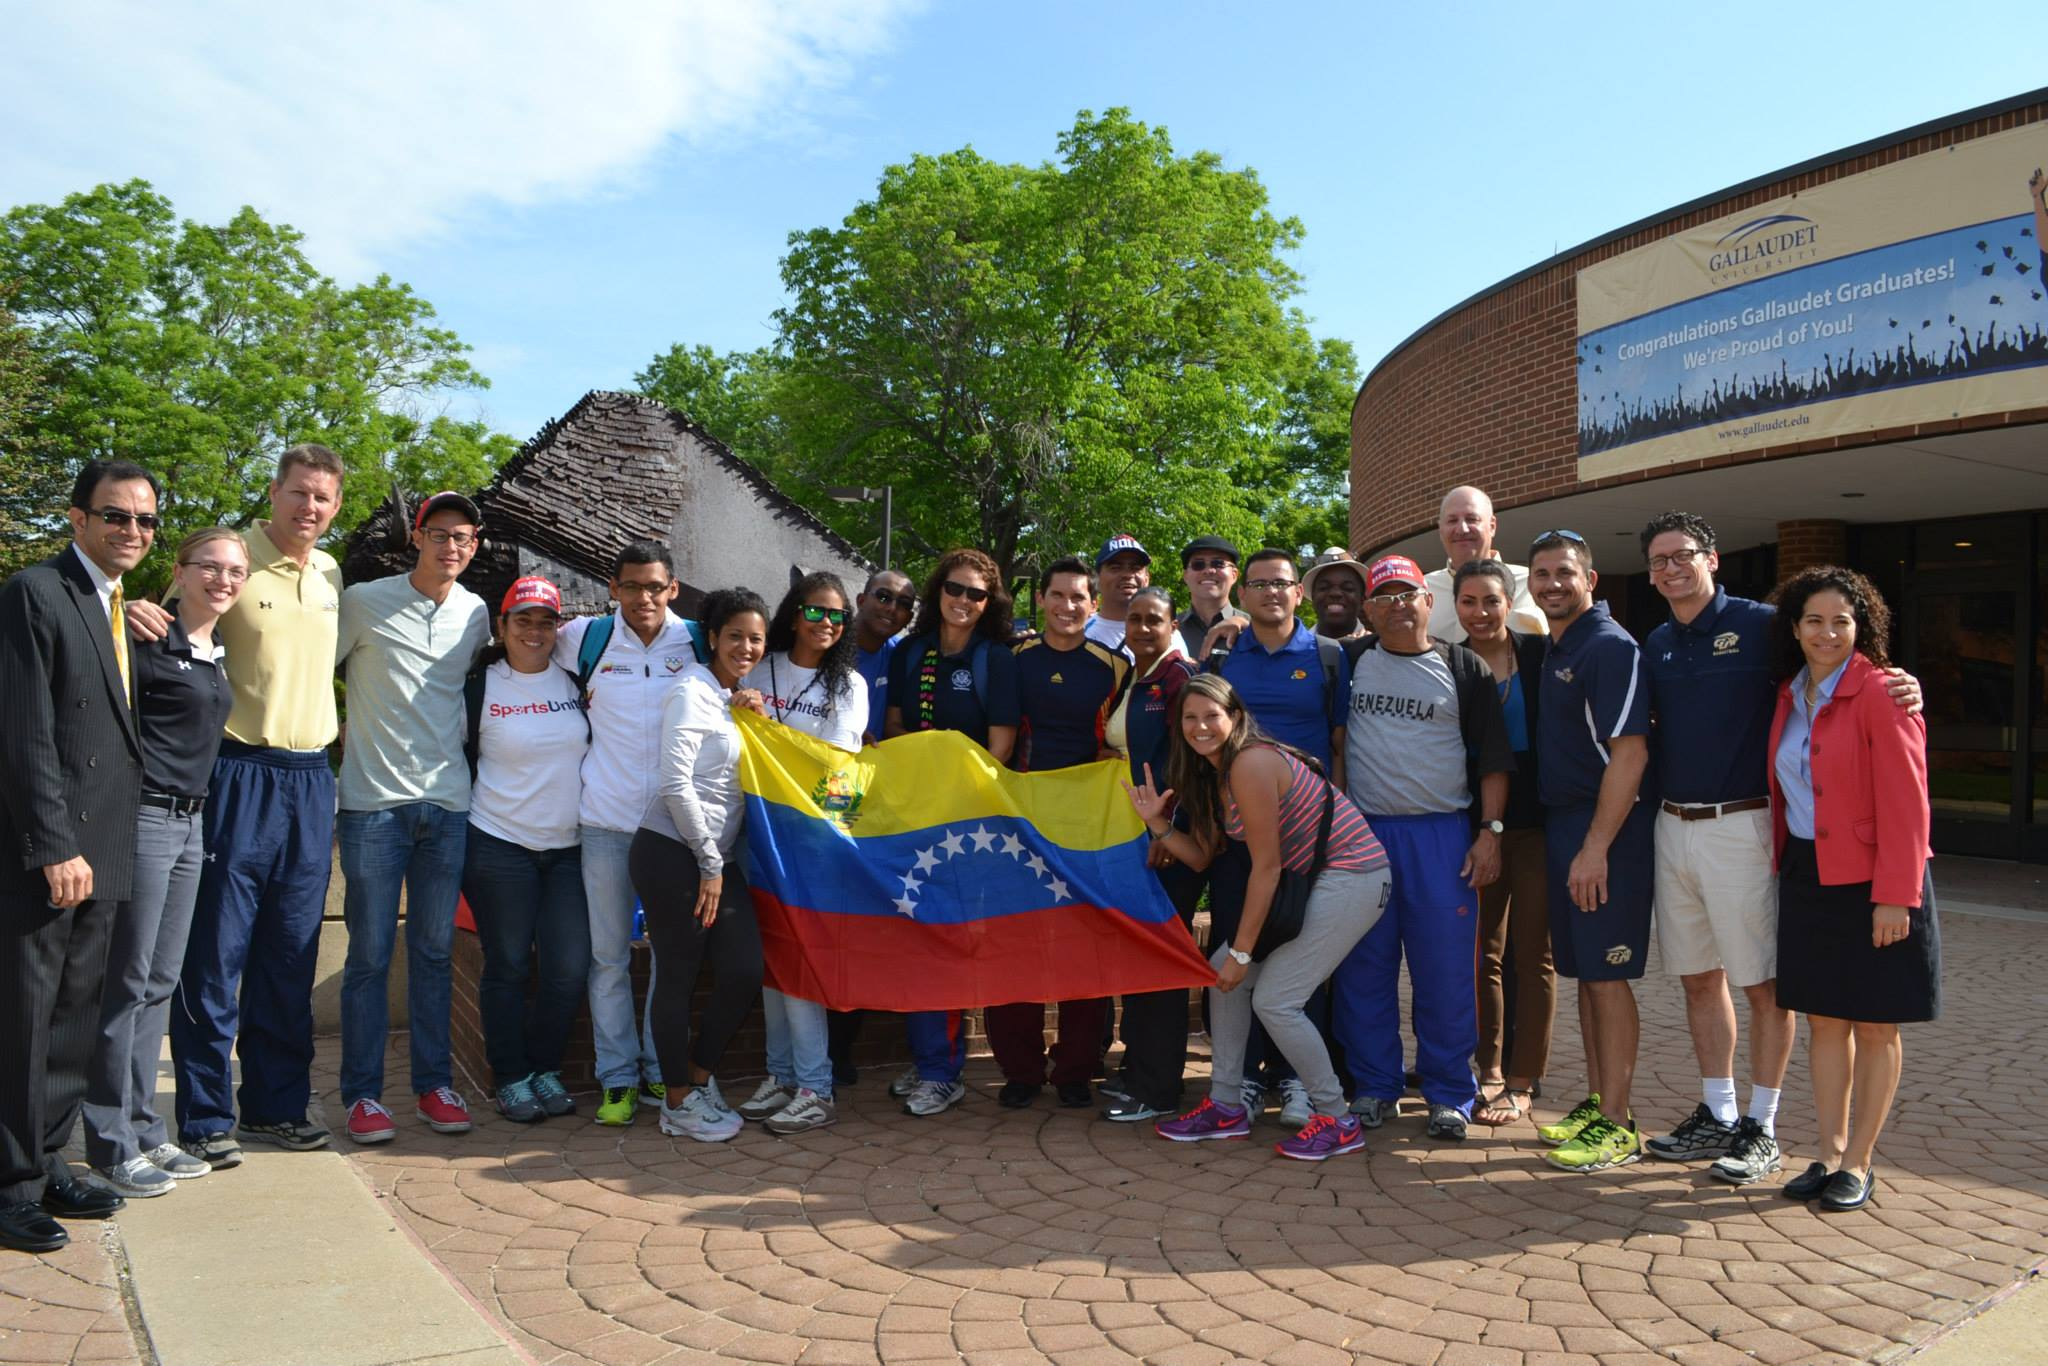 The group poses for a photo before they begin their meetings at Gallaudet University